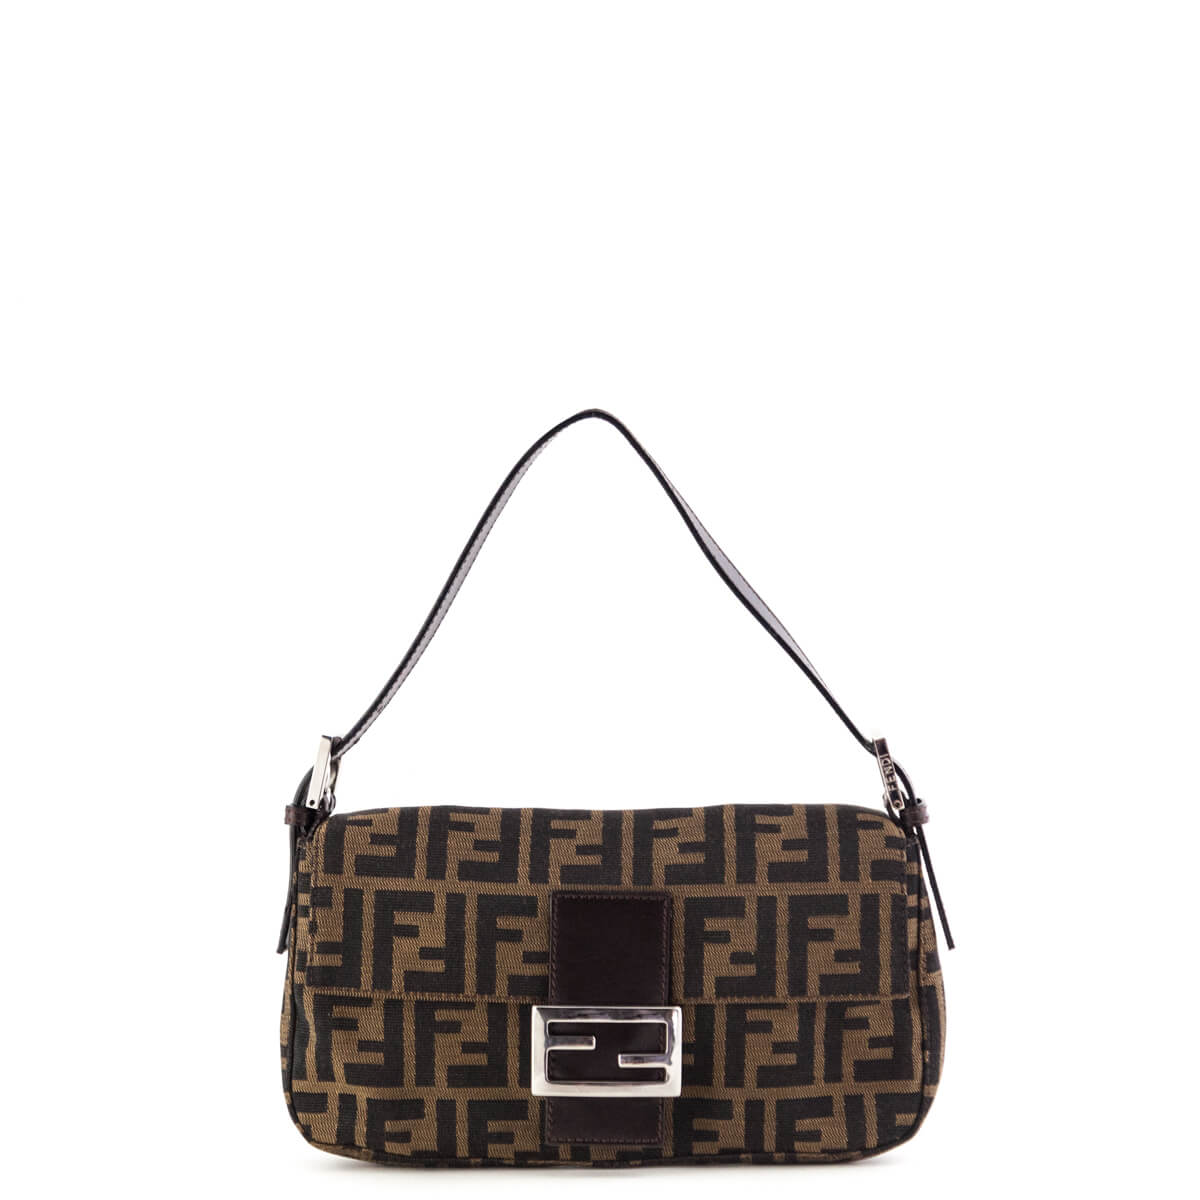 c81466d170f0 Fendi Zucca Baguette Shoulder bag - LOVE that BAG - Preowned Authentic  Designer Handbags ...